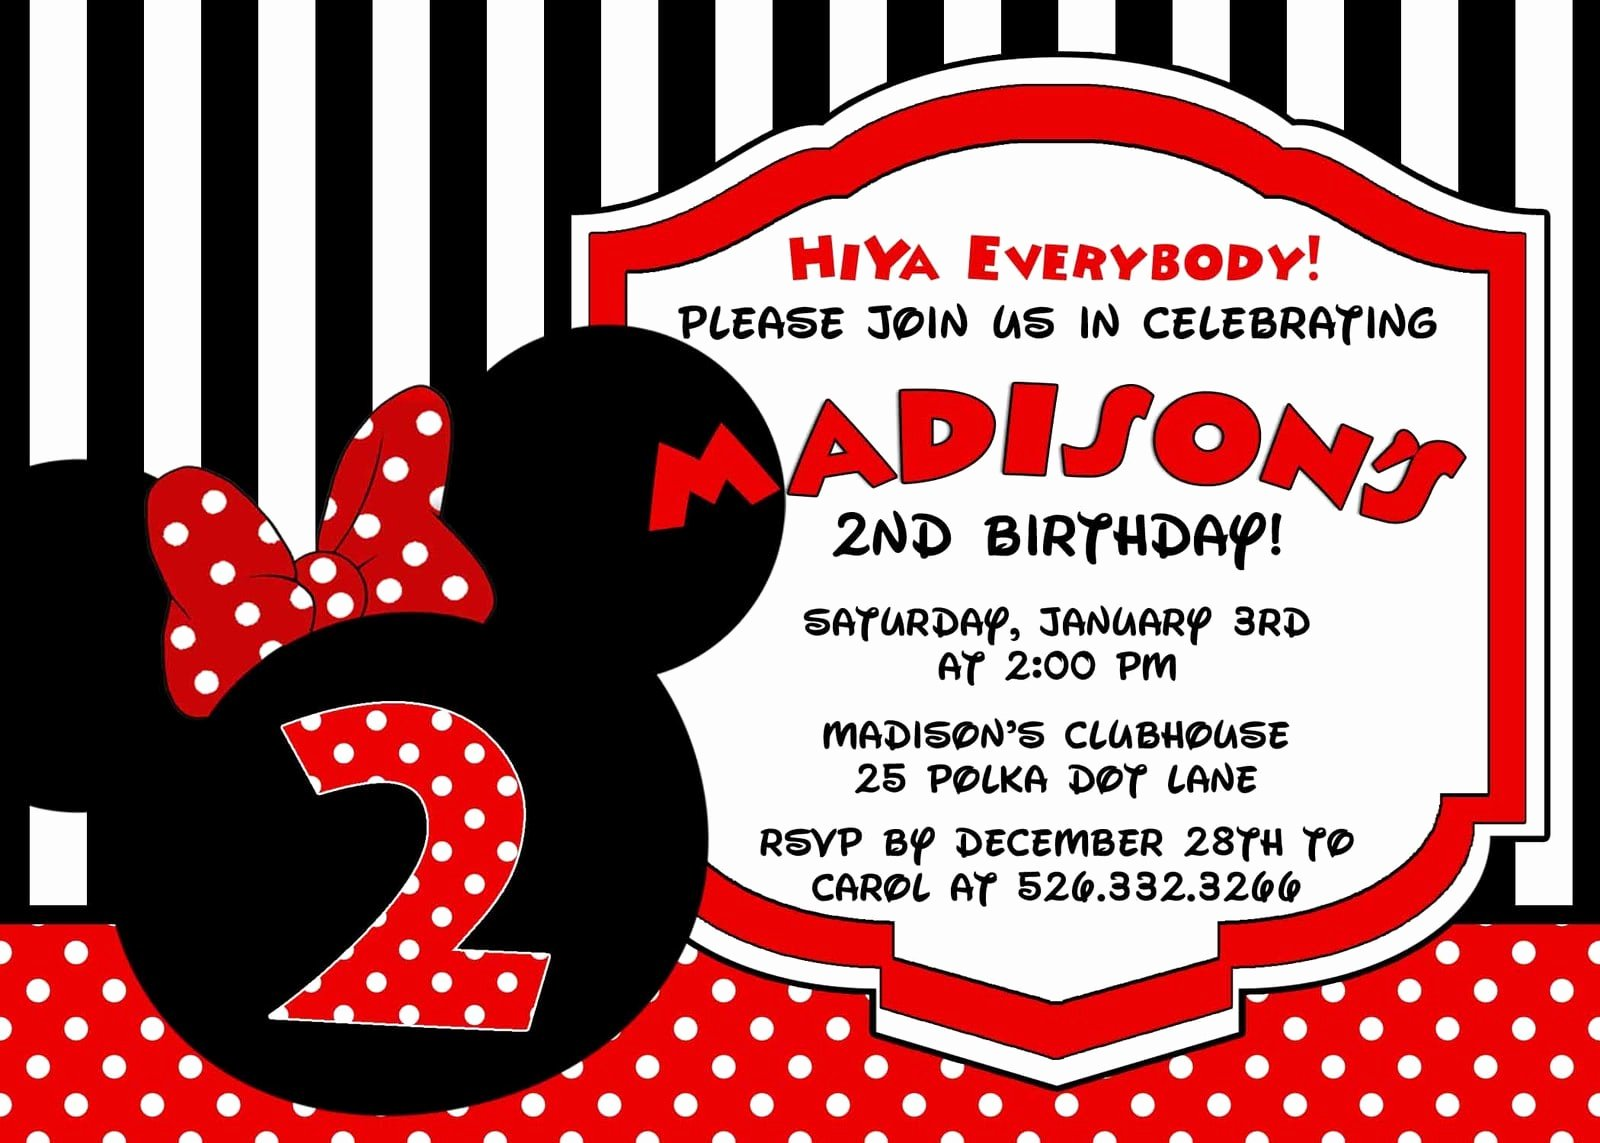 Minnie Mouse Personalized Invitations Inspirational Minnie Mouse Personalized Birthday Invitation